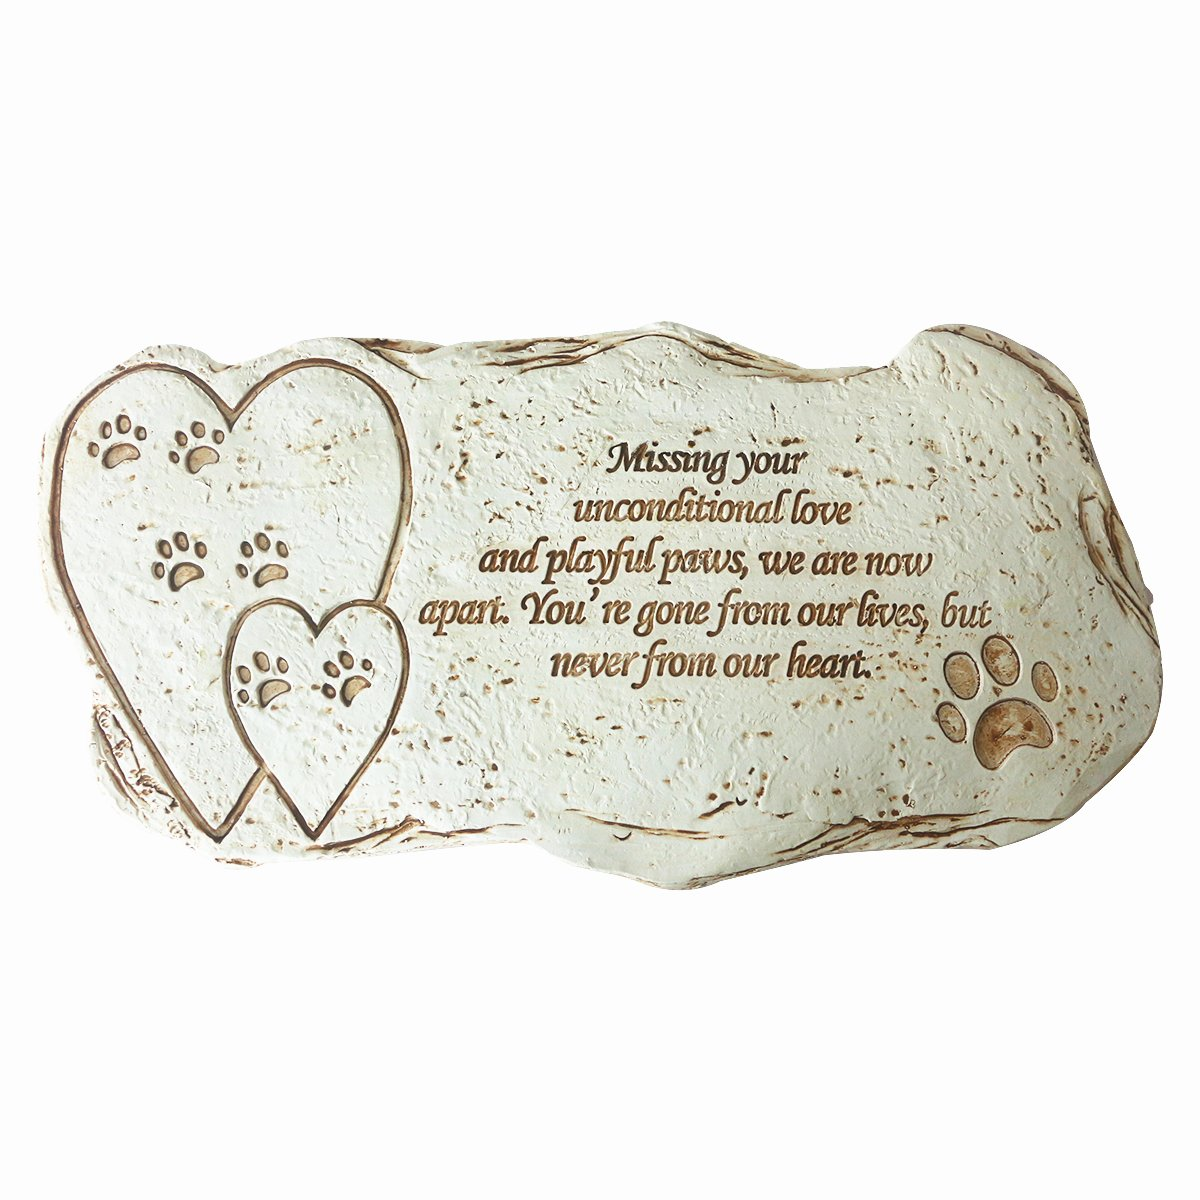 JHB Pet Memorial Dog Stone, Hand-printed Personalized Loss of Pet Gifts